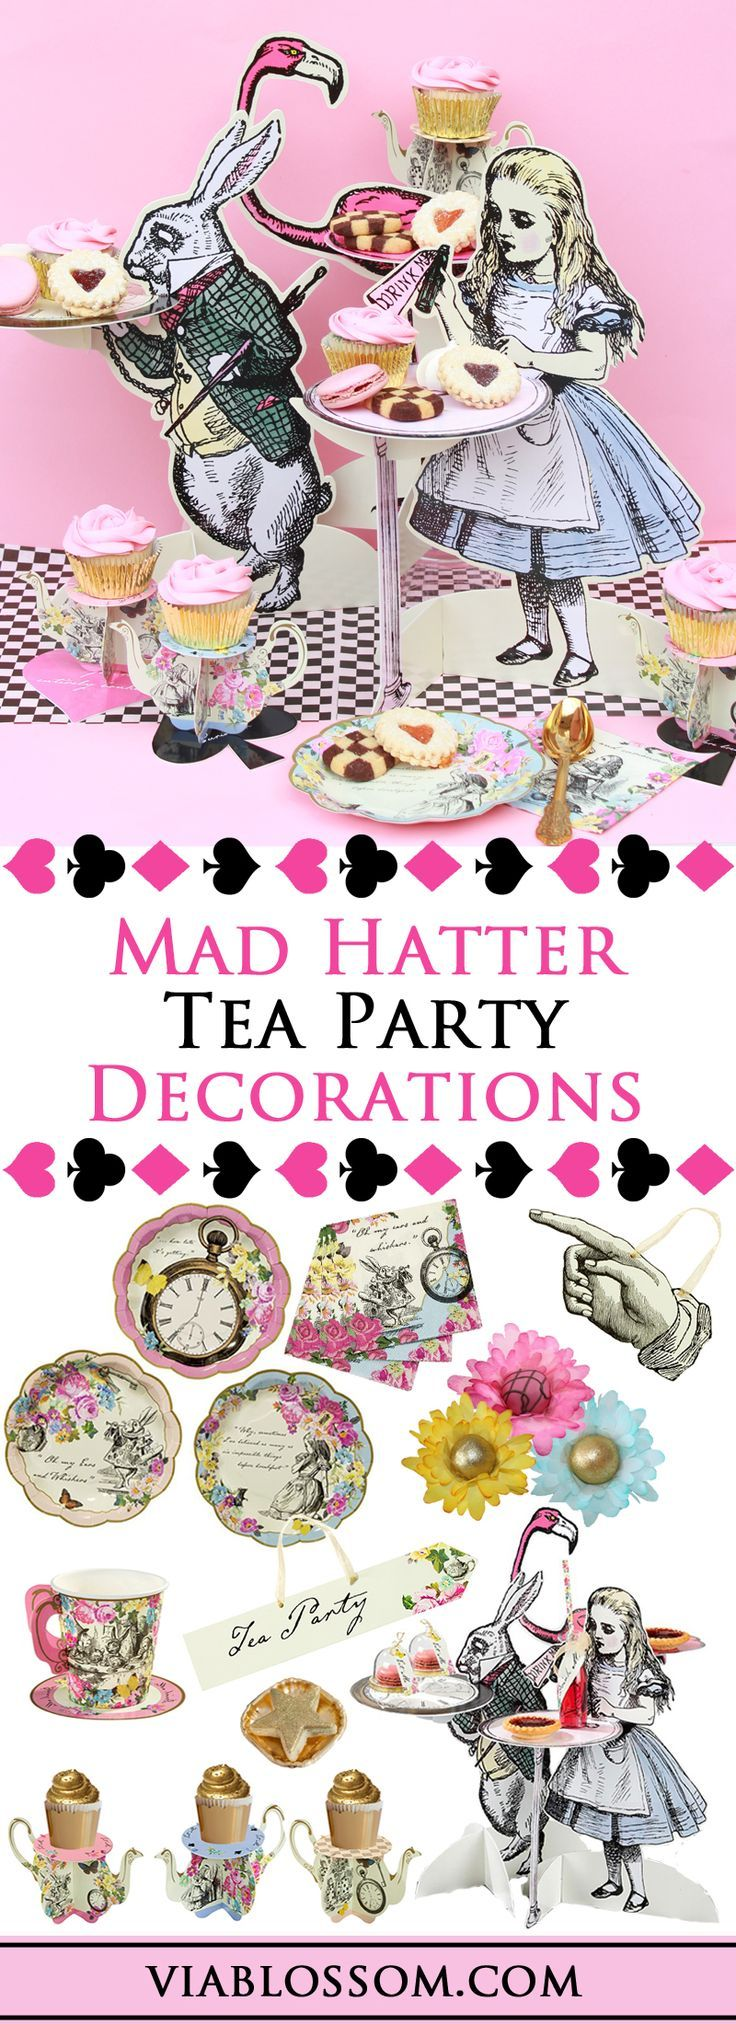 Mad hatter tea party decoration ideas - Mad Hatter Tea Party Decorations For A Fabulous Alice In Wonderland Party All The Alice In Wonderland Party Ideas For A Girl Birthday Party